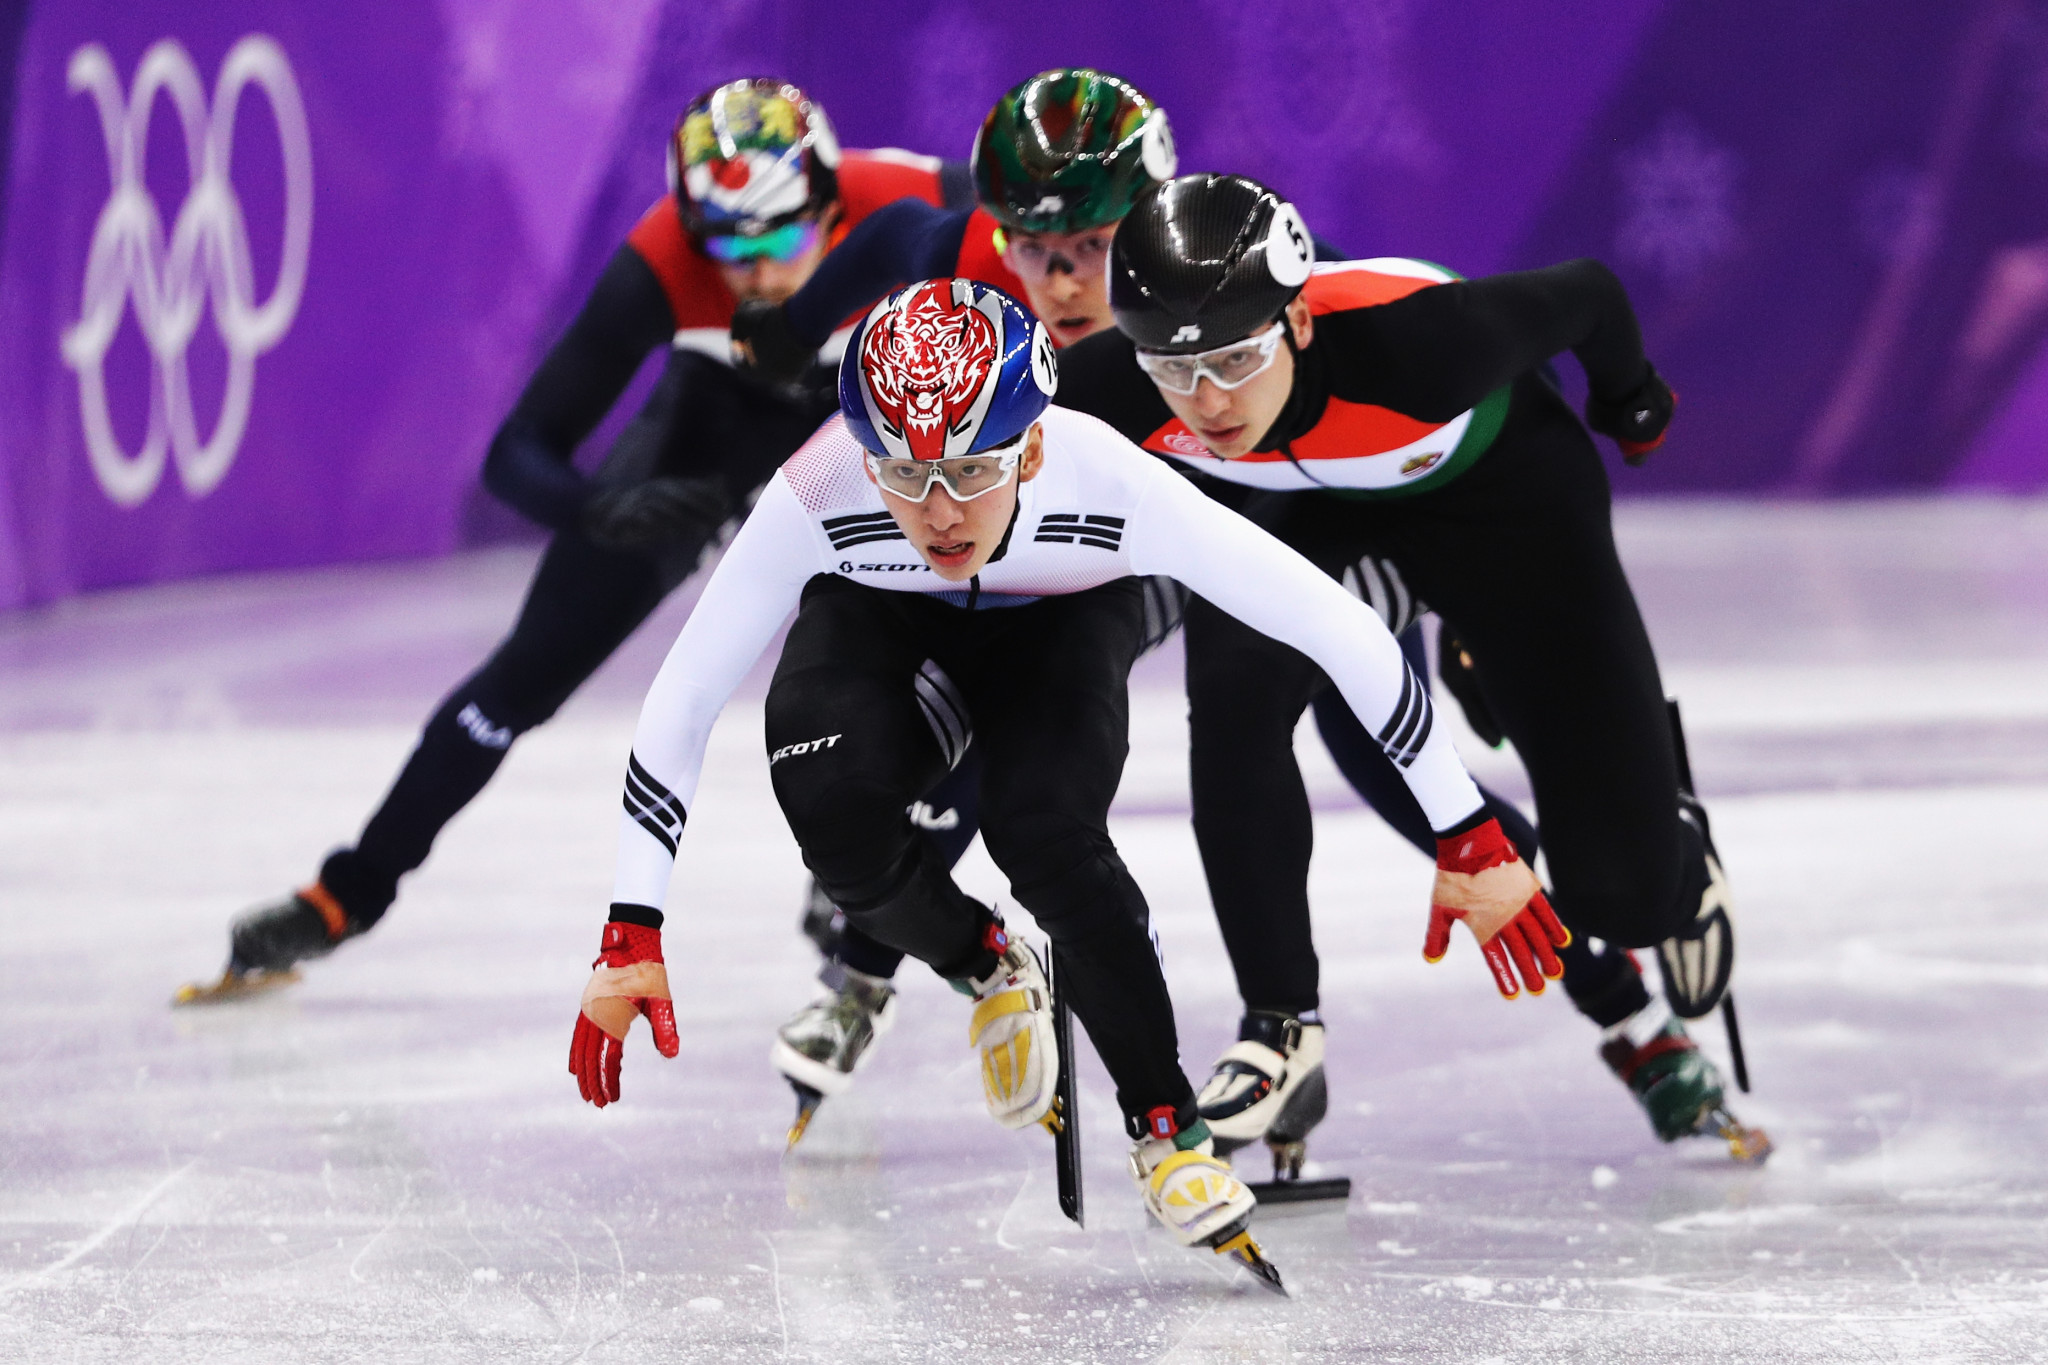 Lim Hyo-jun is aiming to retain his 1,500m short track Olympic title at Beijing 2022 ©Getty Images